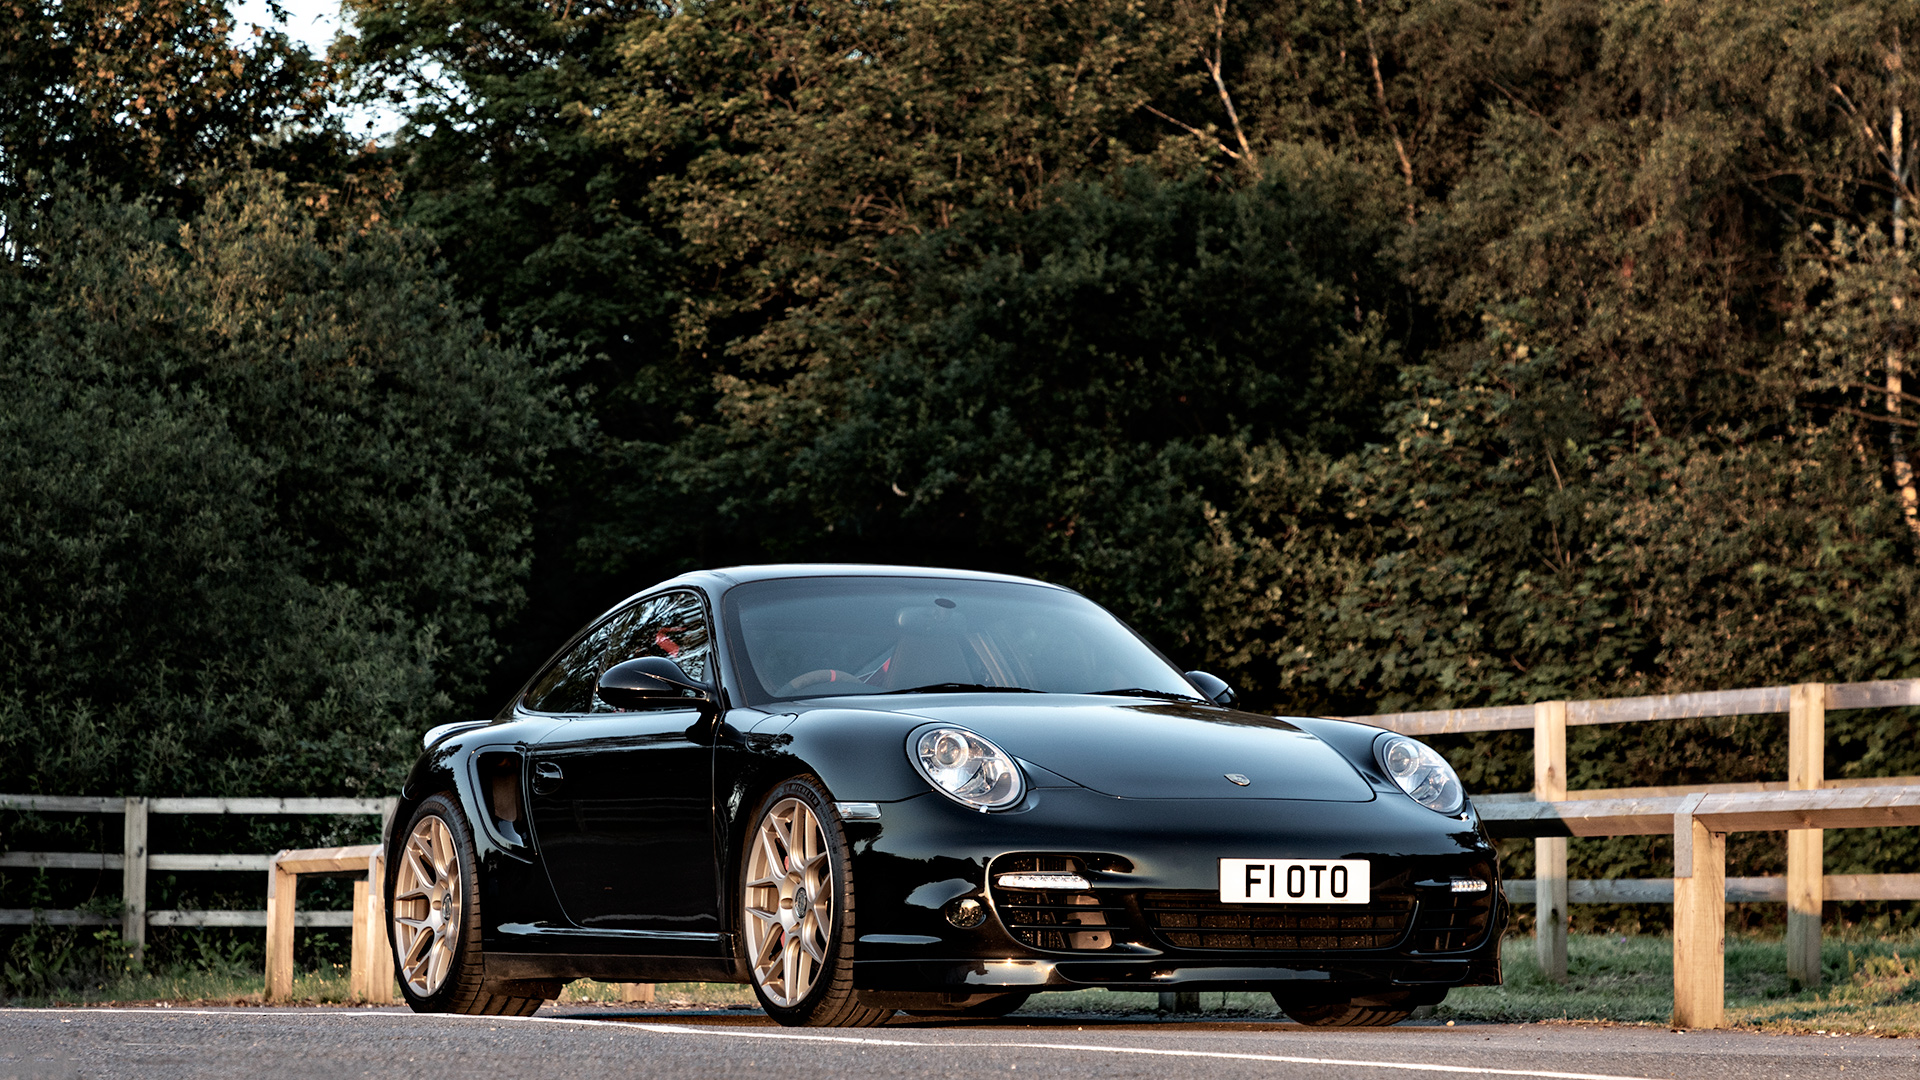 911uk.com - Porsche Forum : View topic - 997 Pictures ...